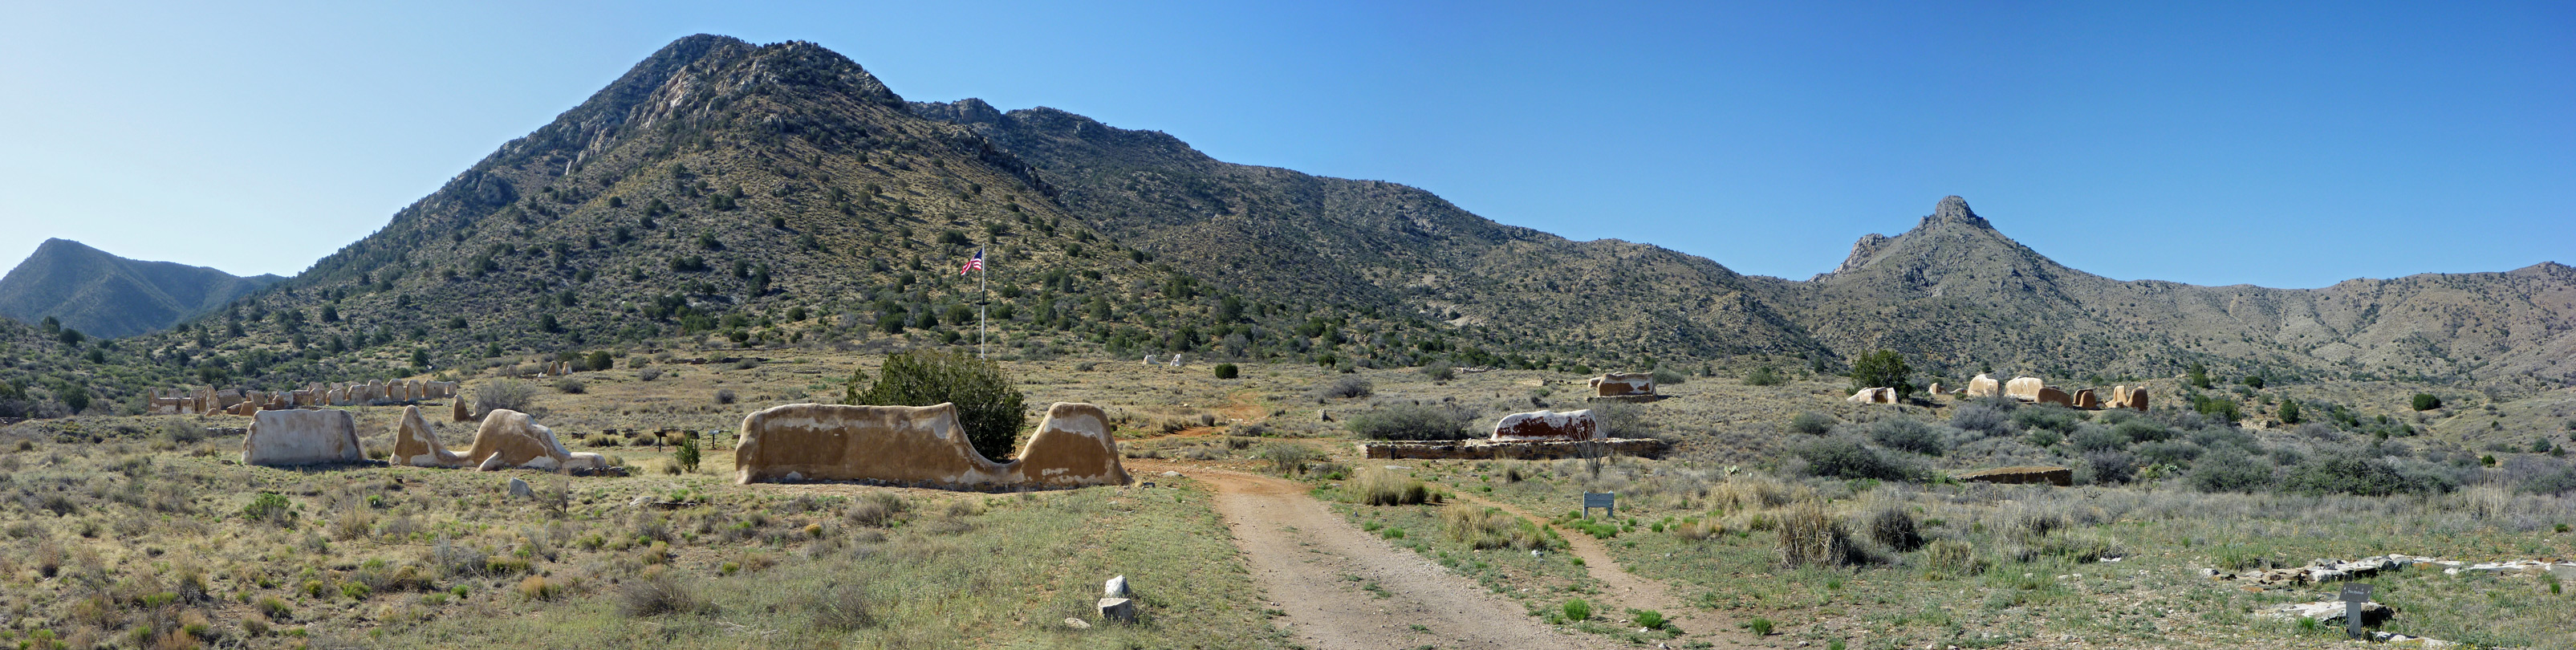 Panoramic view of Fort Bowie